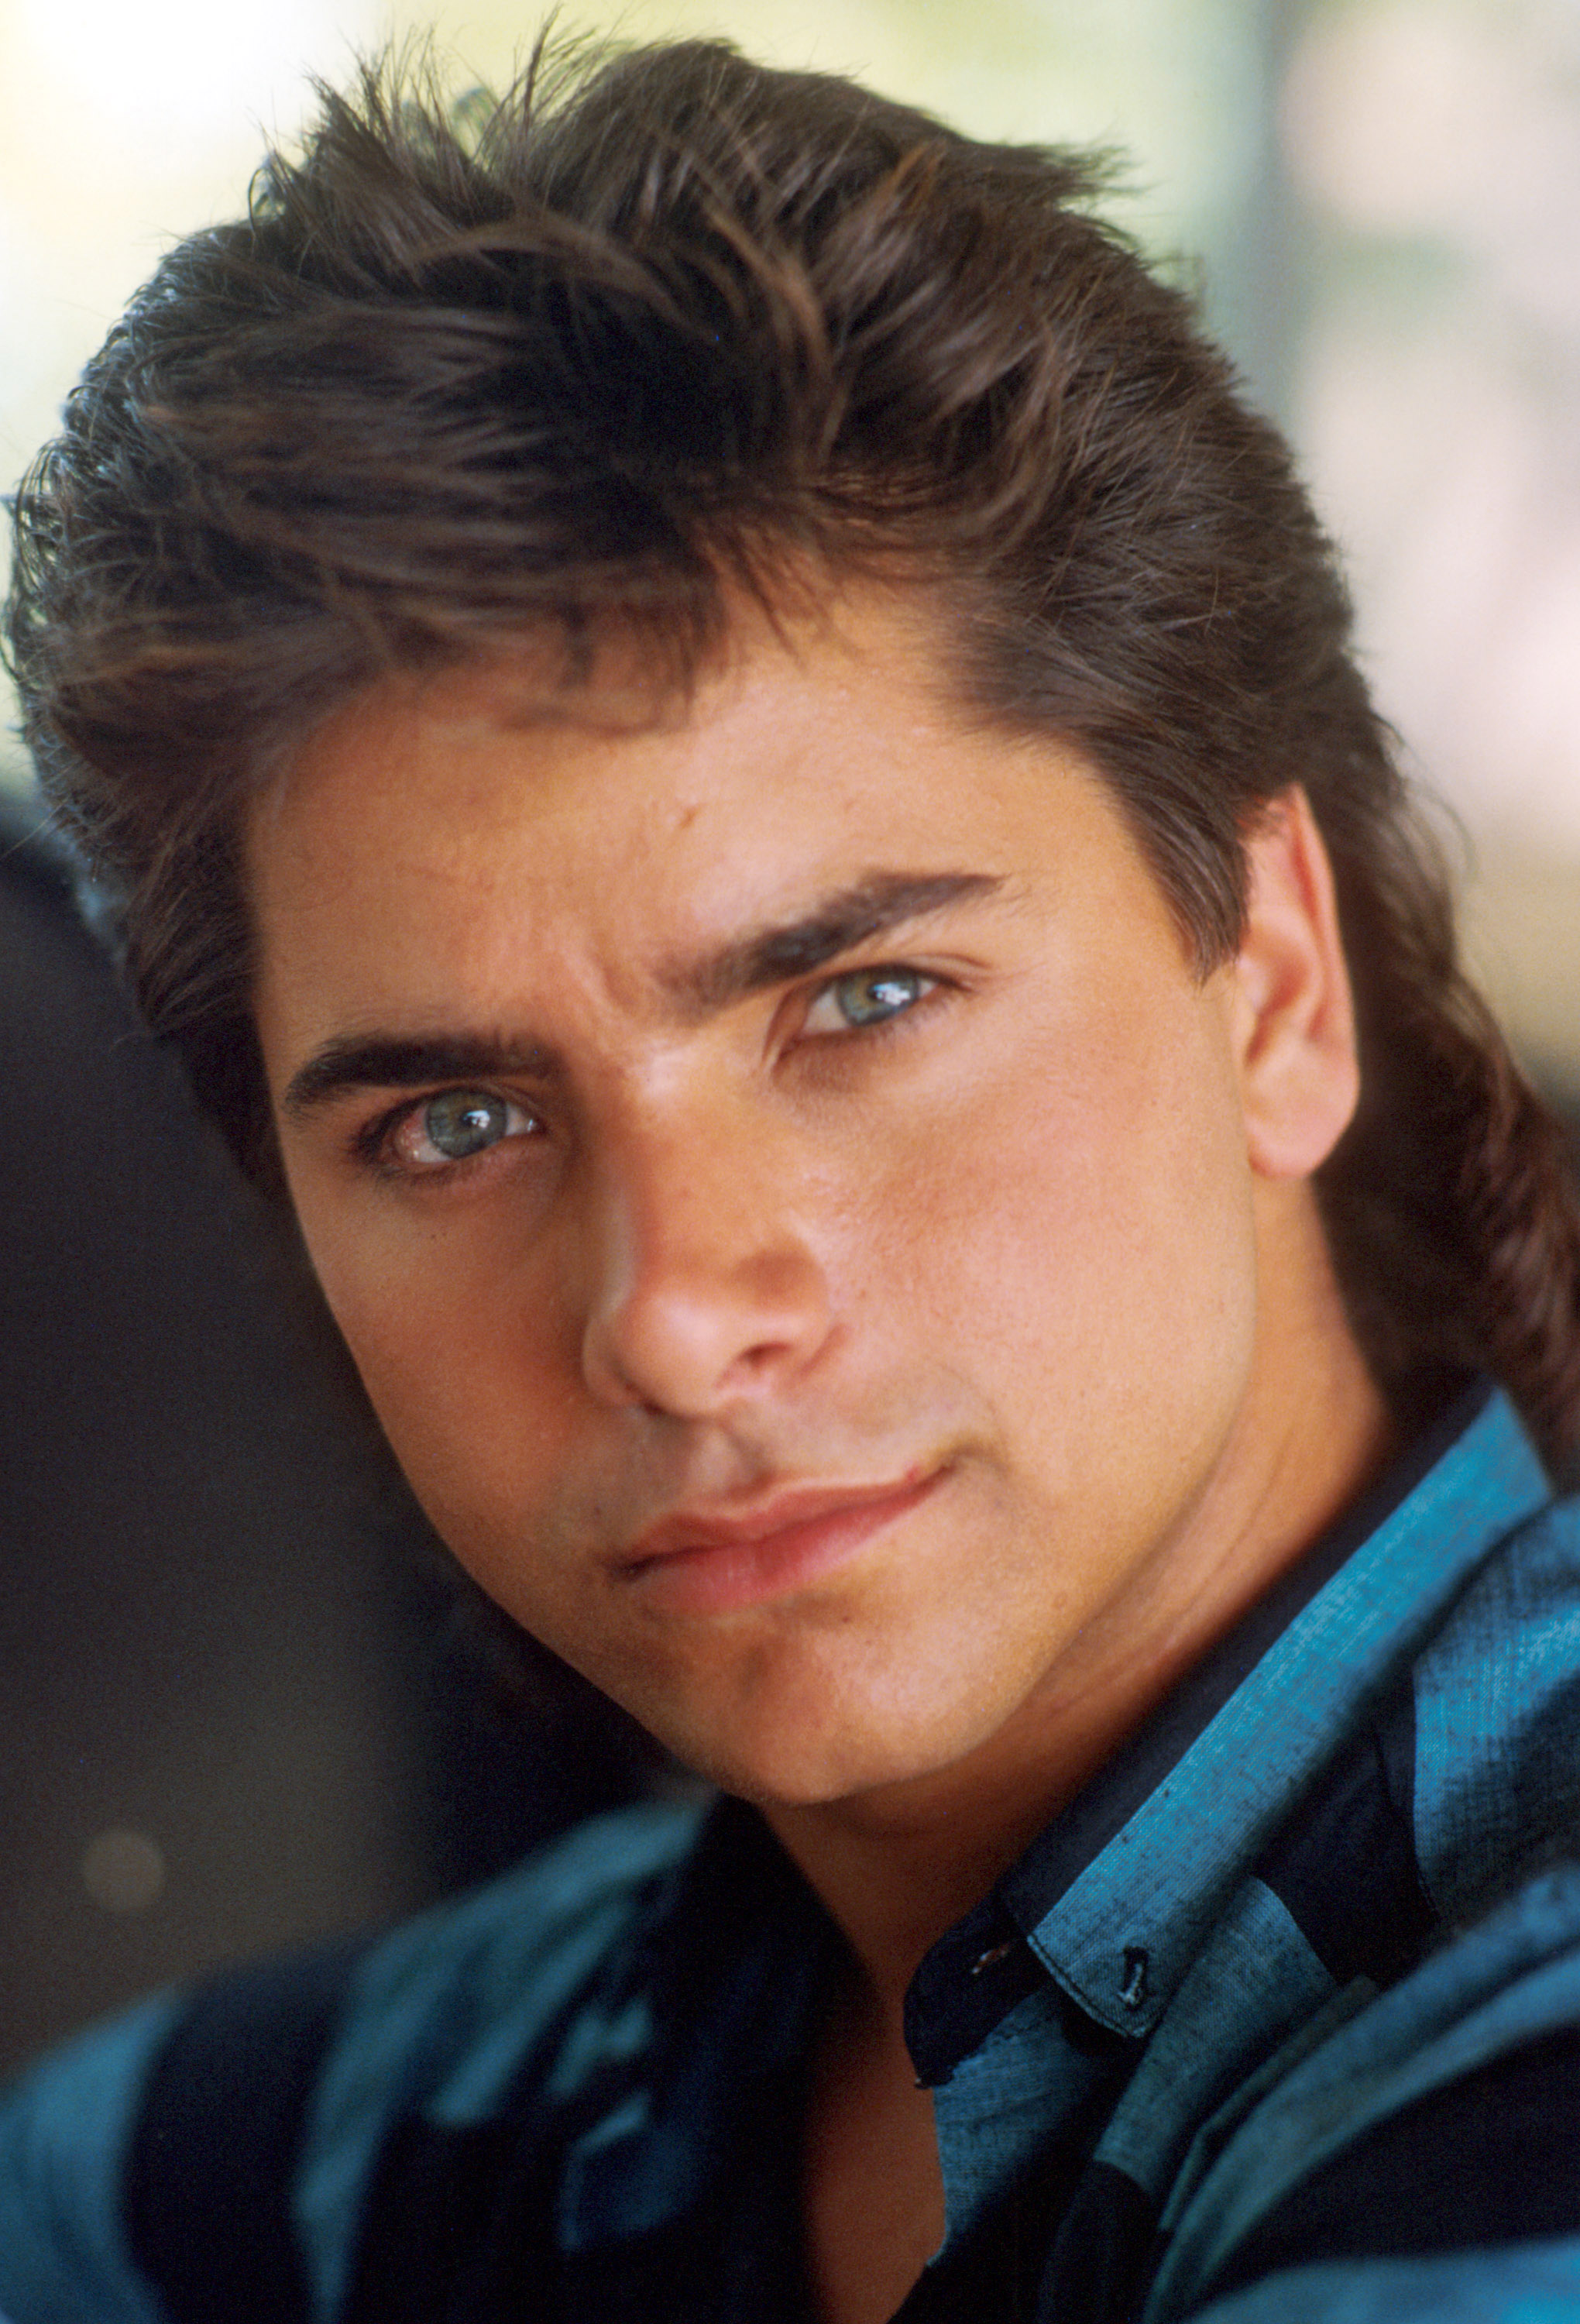 The Best Of John Stamos Hair Sheknows